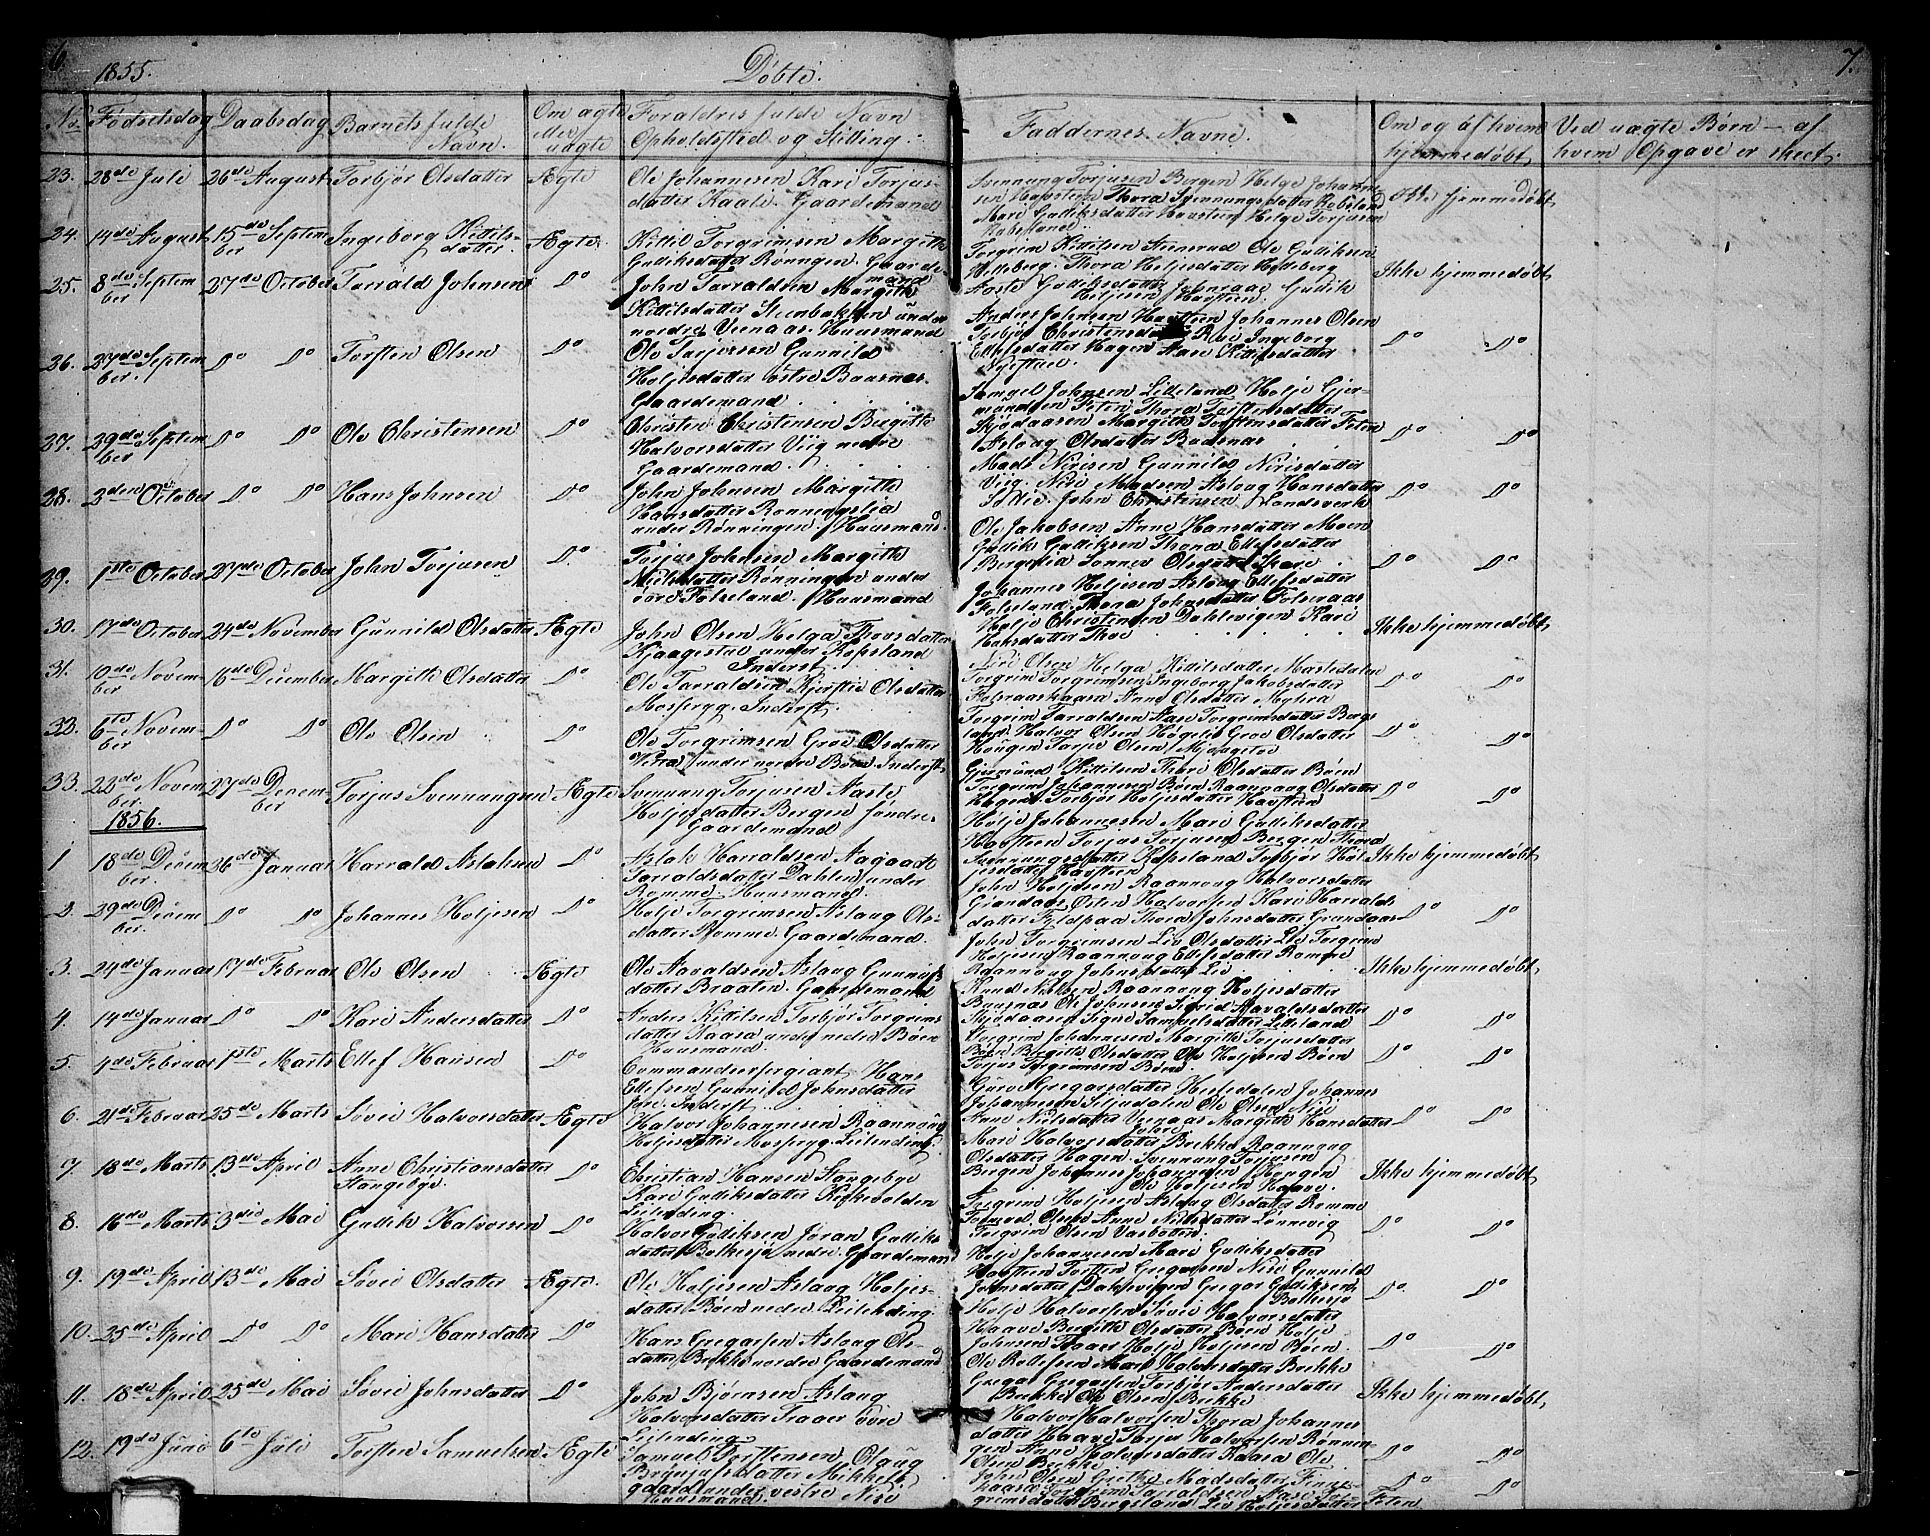 SAKO, Gransherad kirkebøker, G/Ga/L0002: Parish register (copy) no. I 2, 1854-1886, p. 6-7